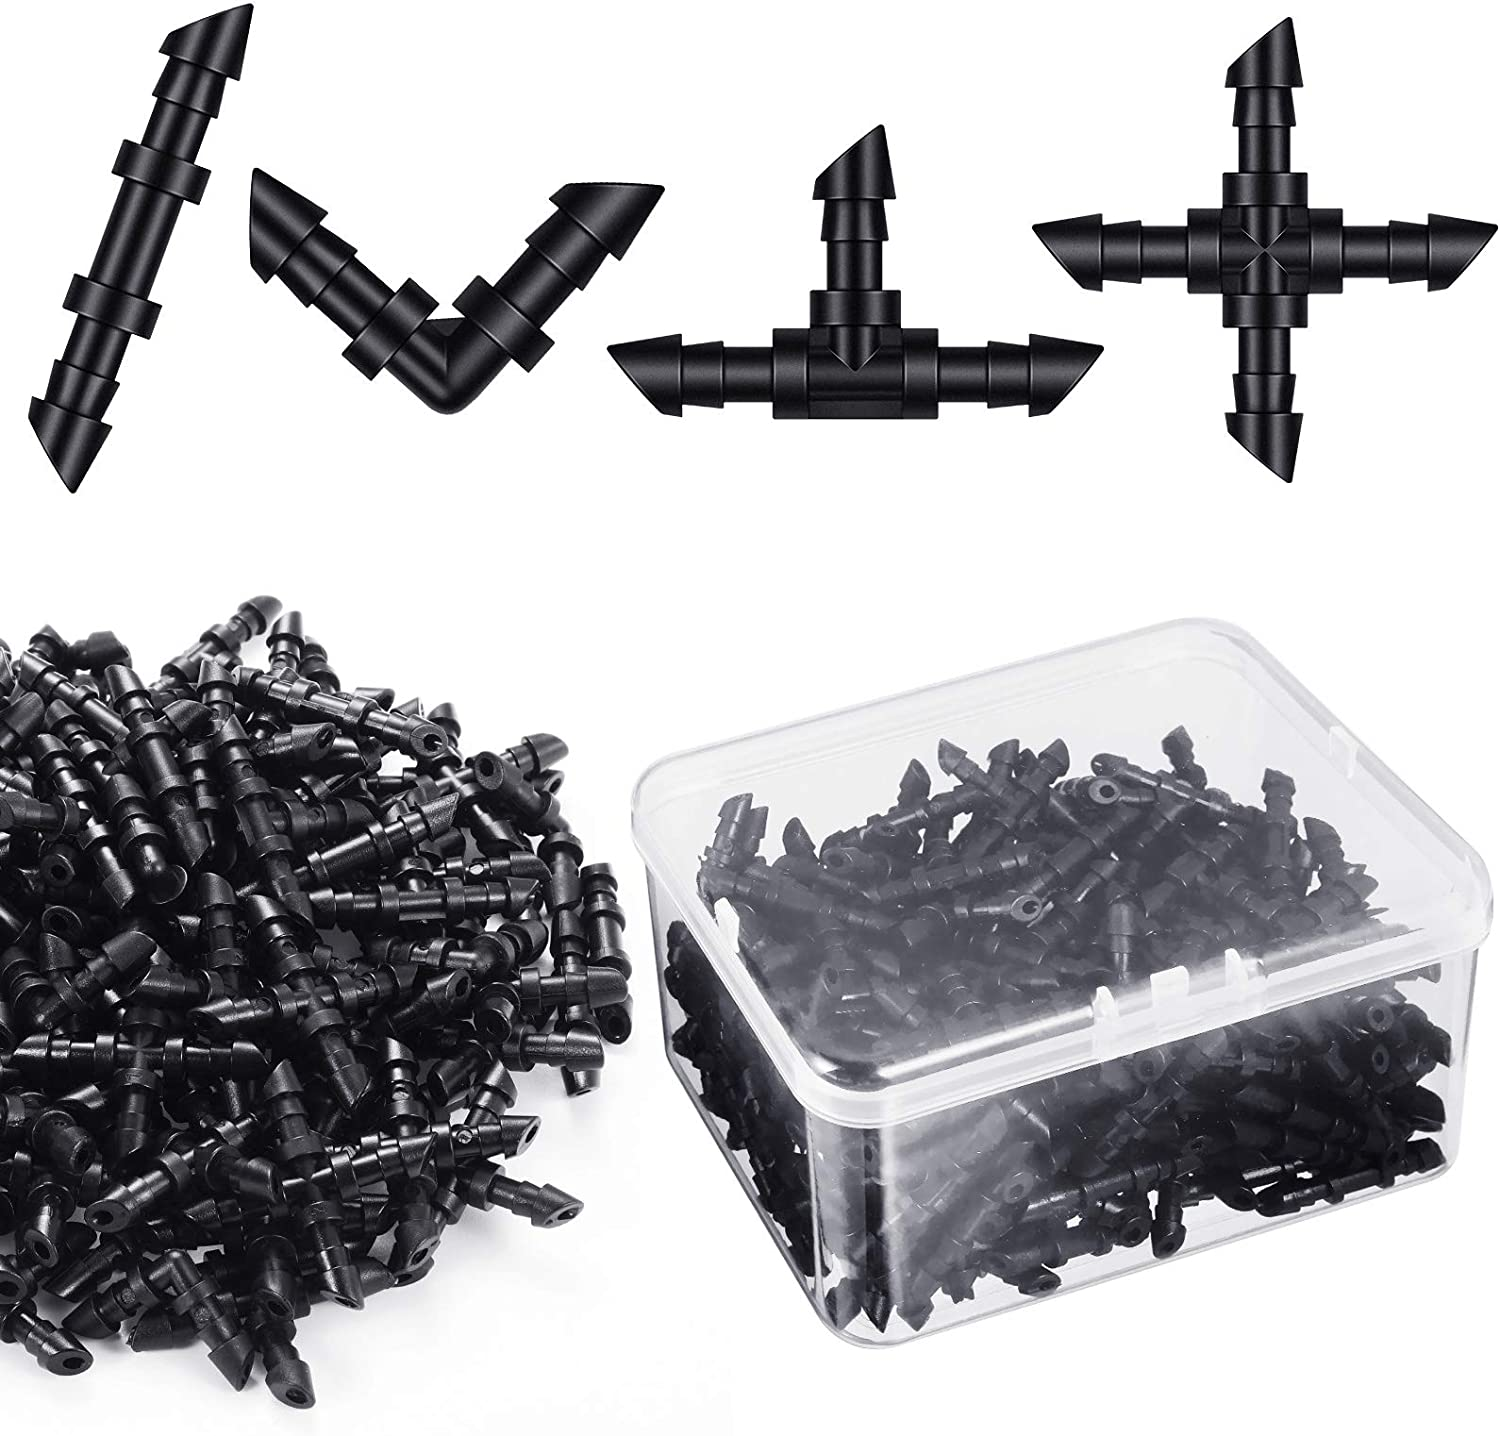 200 Pieces Drip Irrigation Fittings Kit for 1/4 Inch Tubing, 50 Straight Barbs, 50 Tees, 50 Elbows, 50 4-Way Couplings, Barbed Connectors with Plastic Box for Garden Lawn Drip, Sprinkler Systems,Black